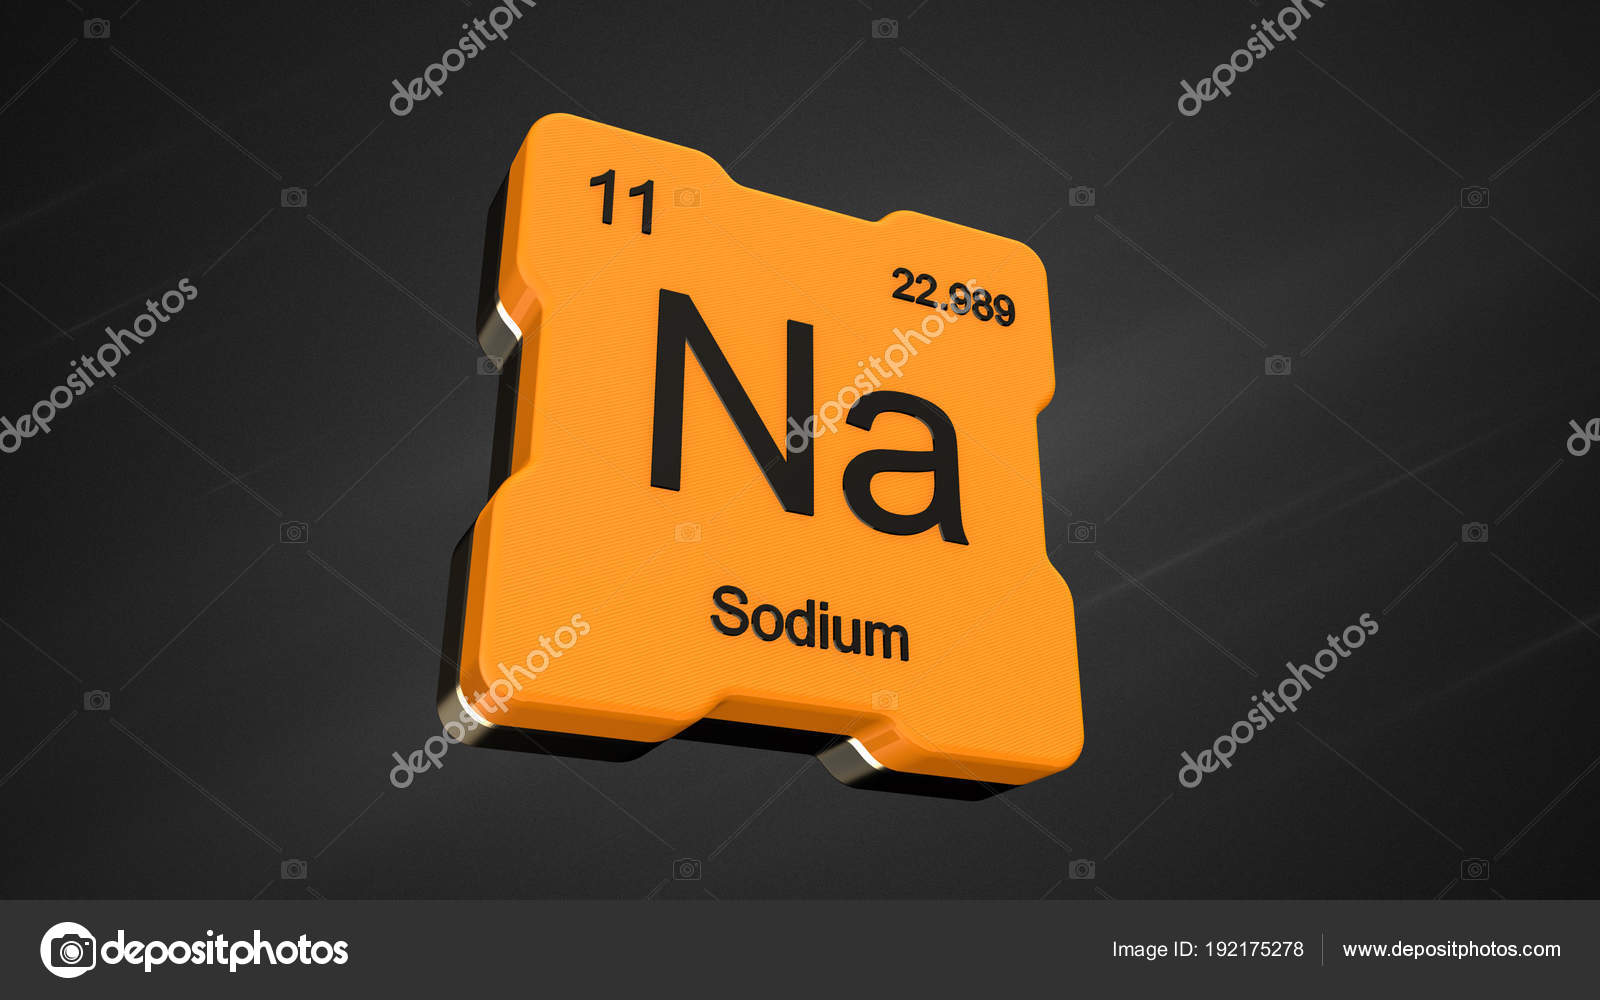 Sodium element number periodic table futuristic yellow icon nice sodium element number 11 from the periodic table on futuristic yellow icon and nice lens flare on noisy dark background 3d render photo by conceptw urtaz Image collections